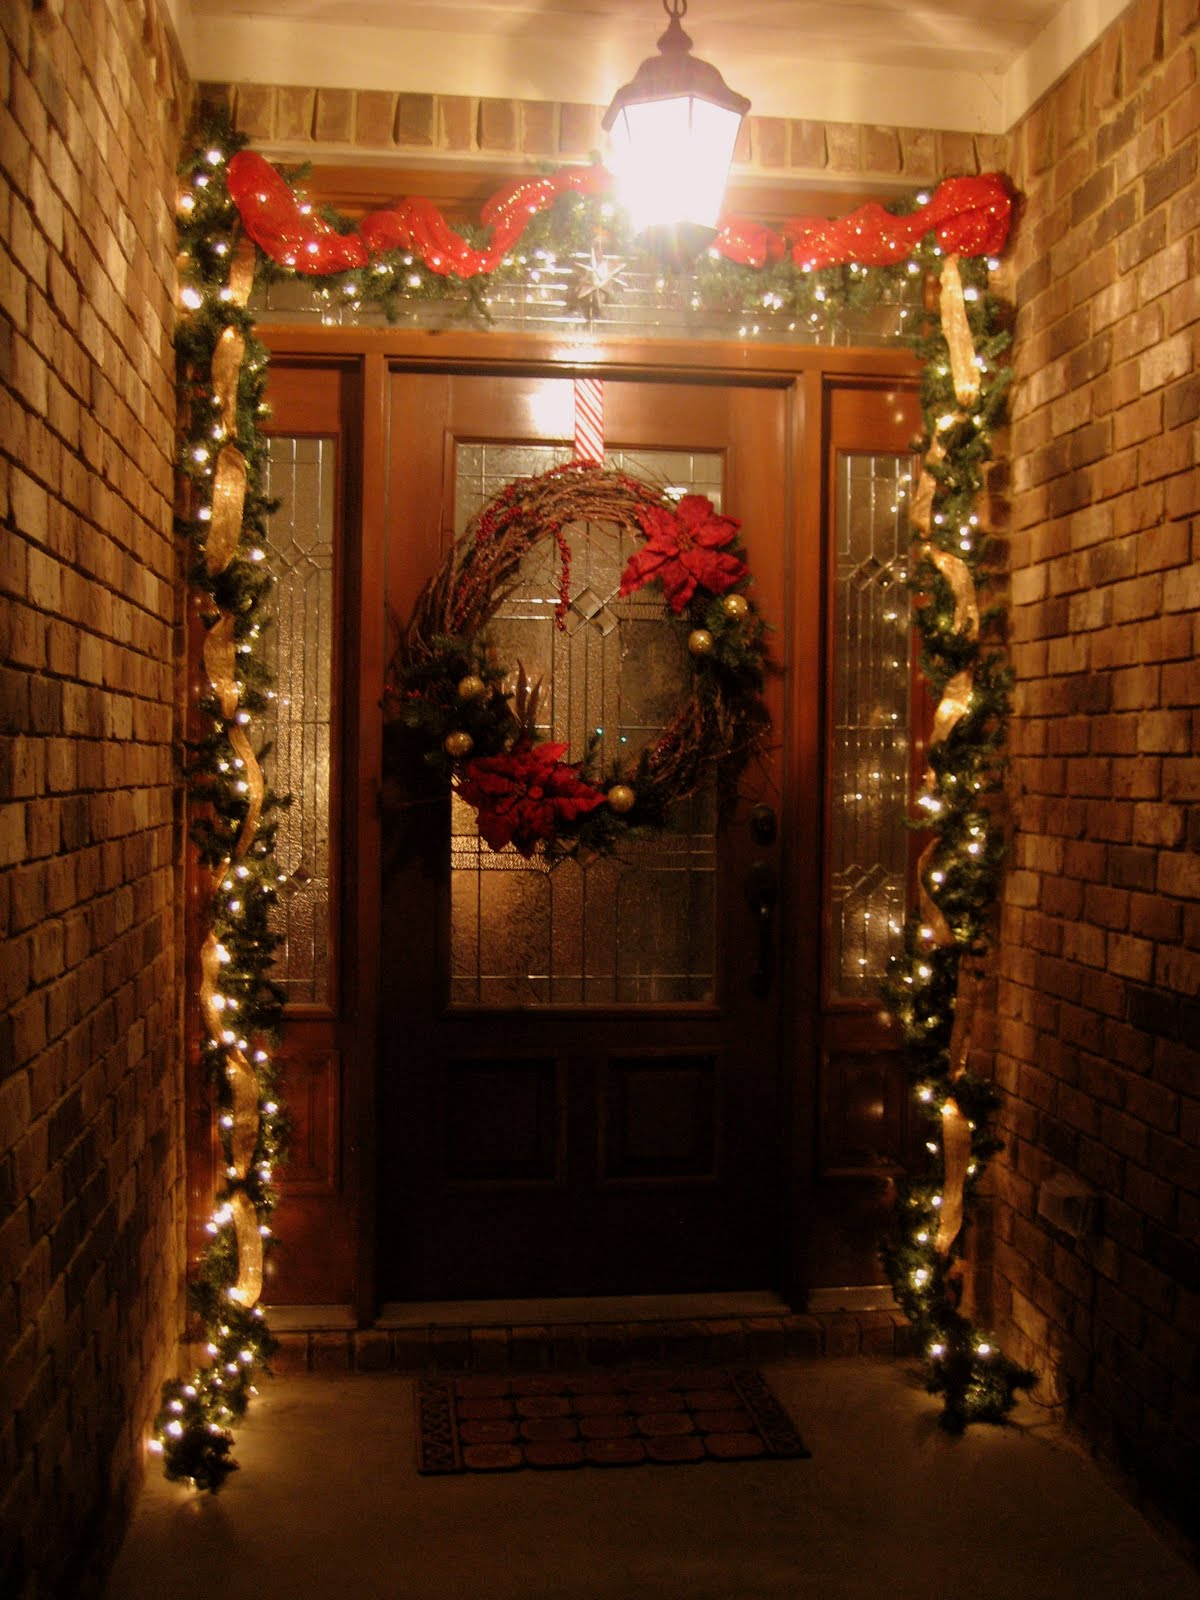 35 Front Door Christmas Decorations Ideas. Christmas Party Supplies Melbourne. Shabby Chic Christmas Decorations Amazon. Natural Christmas Tree Decorations To Make. Christmas Decorations For Shops. Top 5 Christmas Decorations. Pop Up Christmas Tree With Lights And Decorations. Large Outdoor Christmas Decorations Diy. Christmas Decorations Baubles Uk